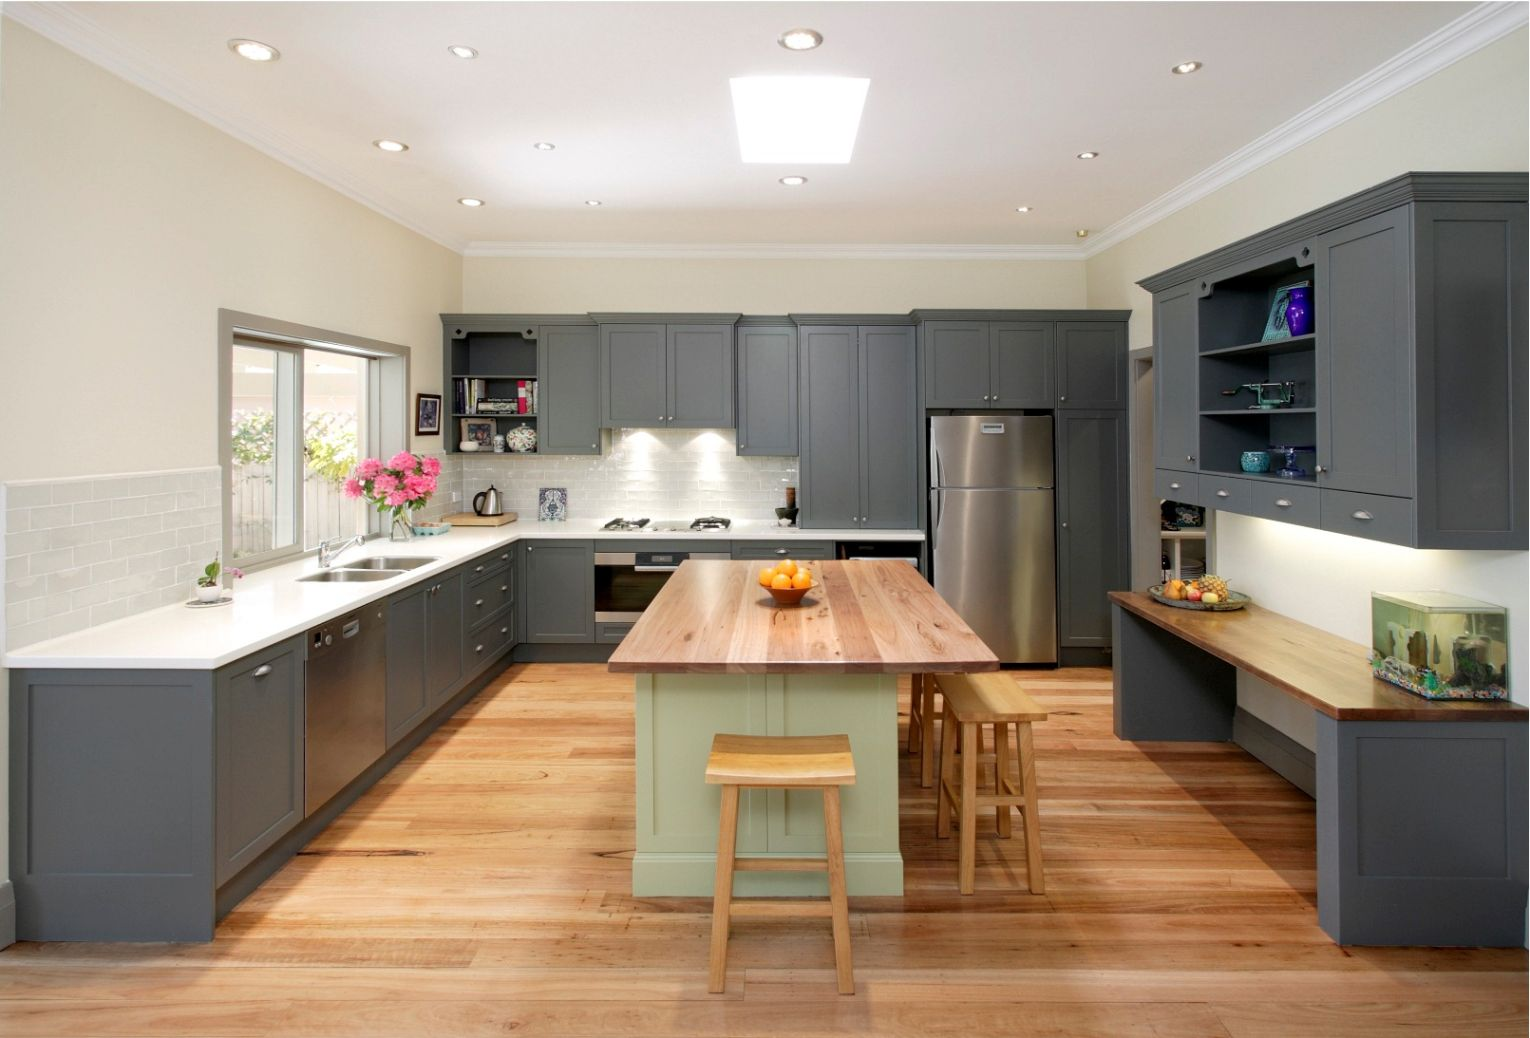 Gray Kitchen Cabinets With White Countertops for Large Modern     Gray Kitchen Cabinets With White Countertops for Large Modern Kitchen Design